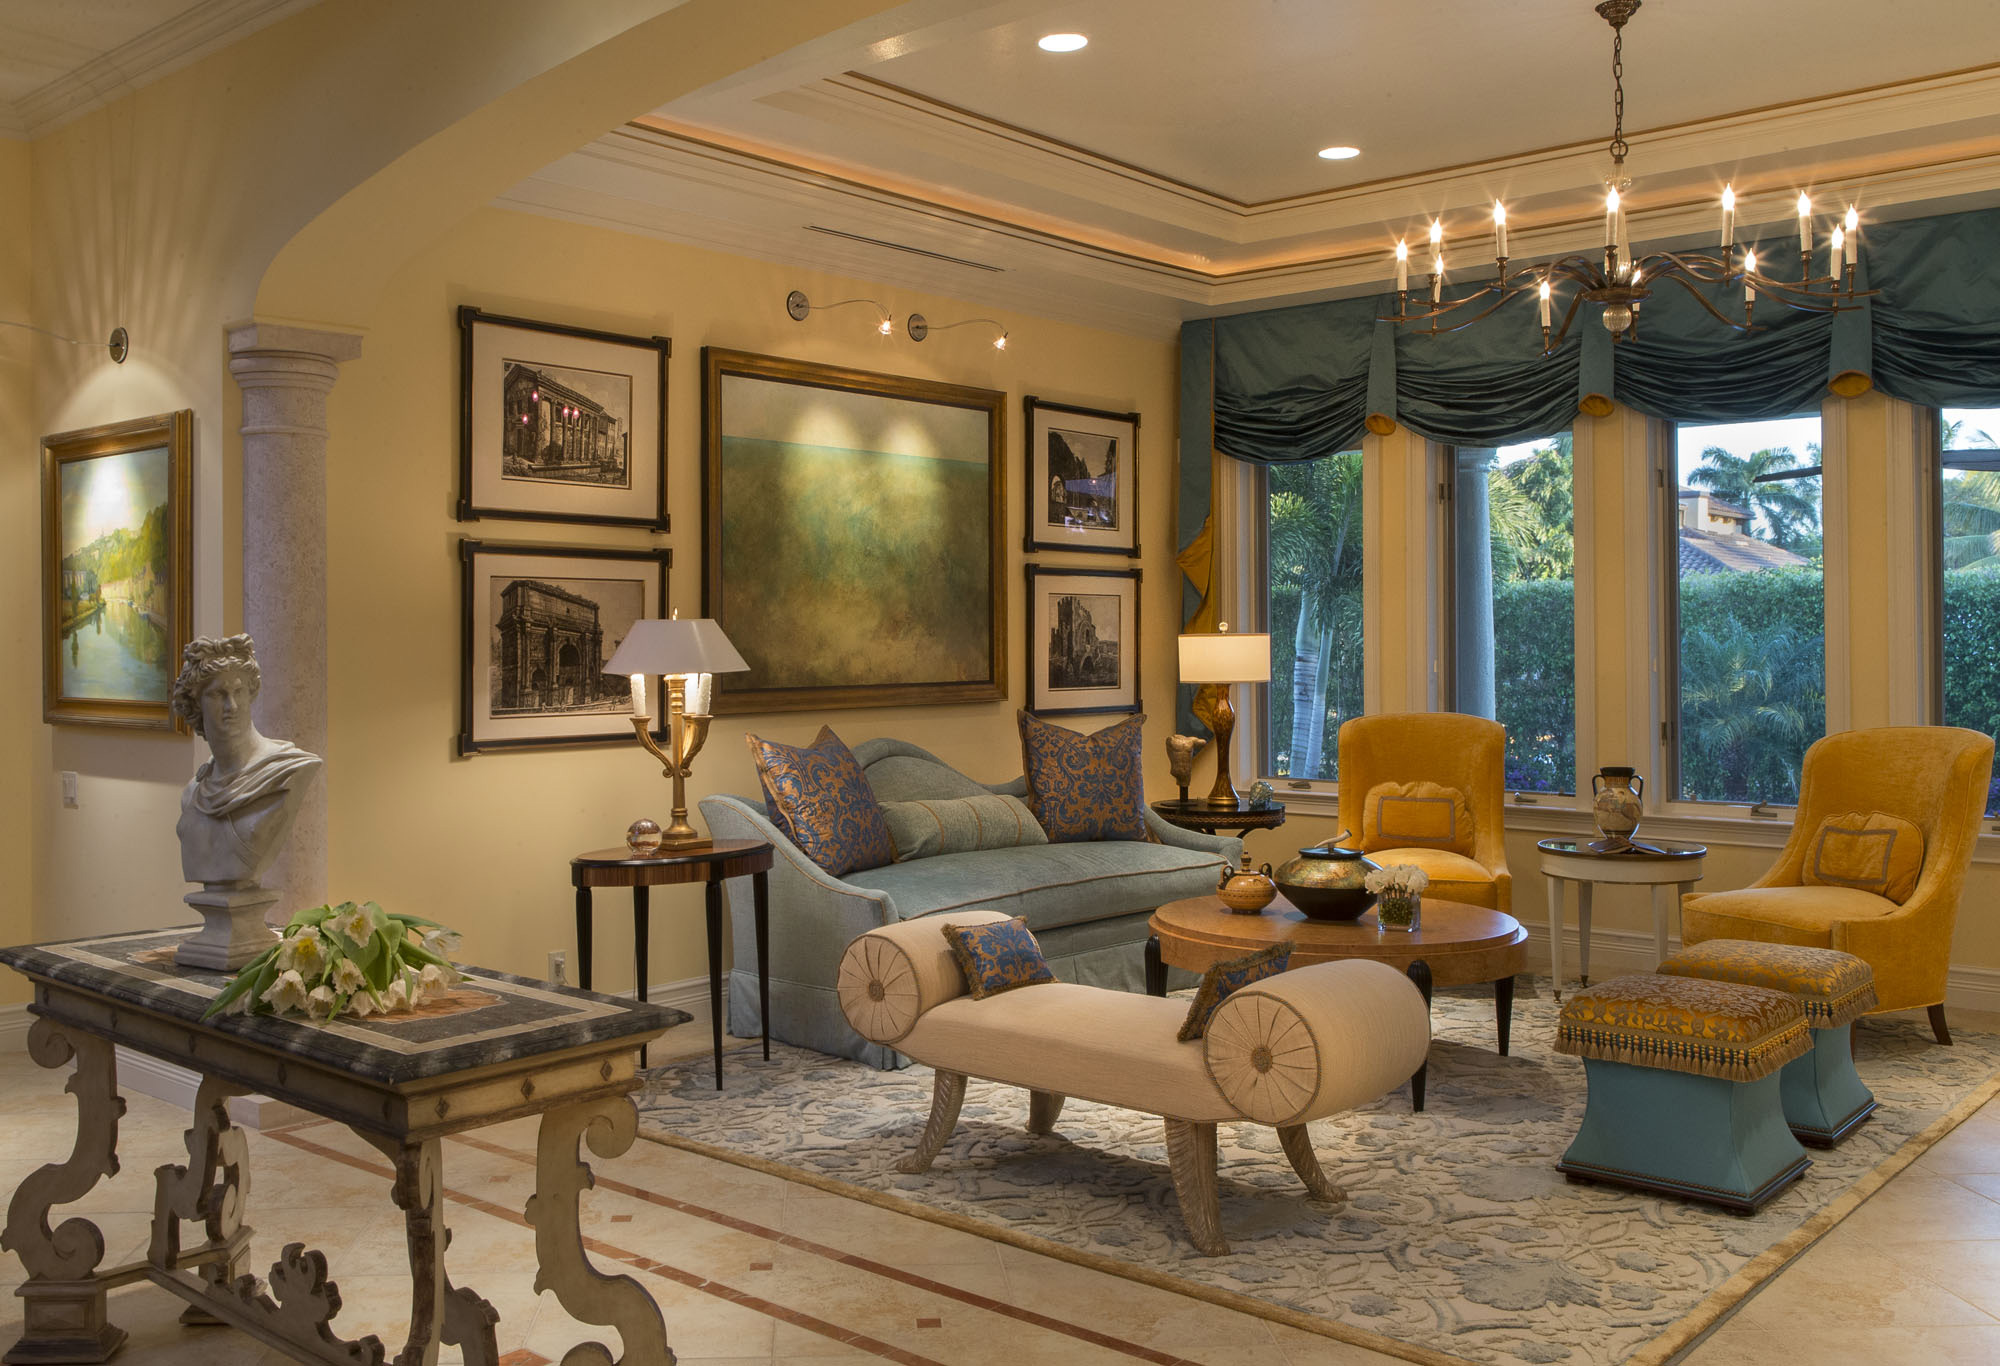 Traditional Interior Design Gallery Malibu West Interiors Naples FL